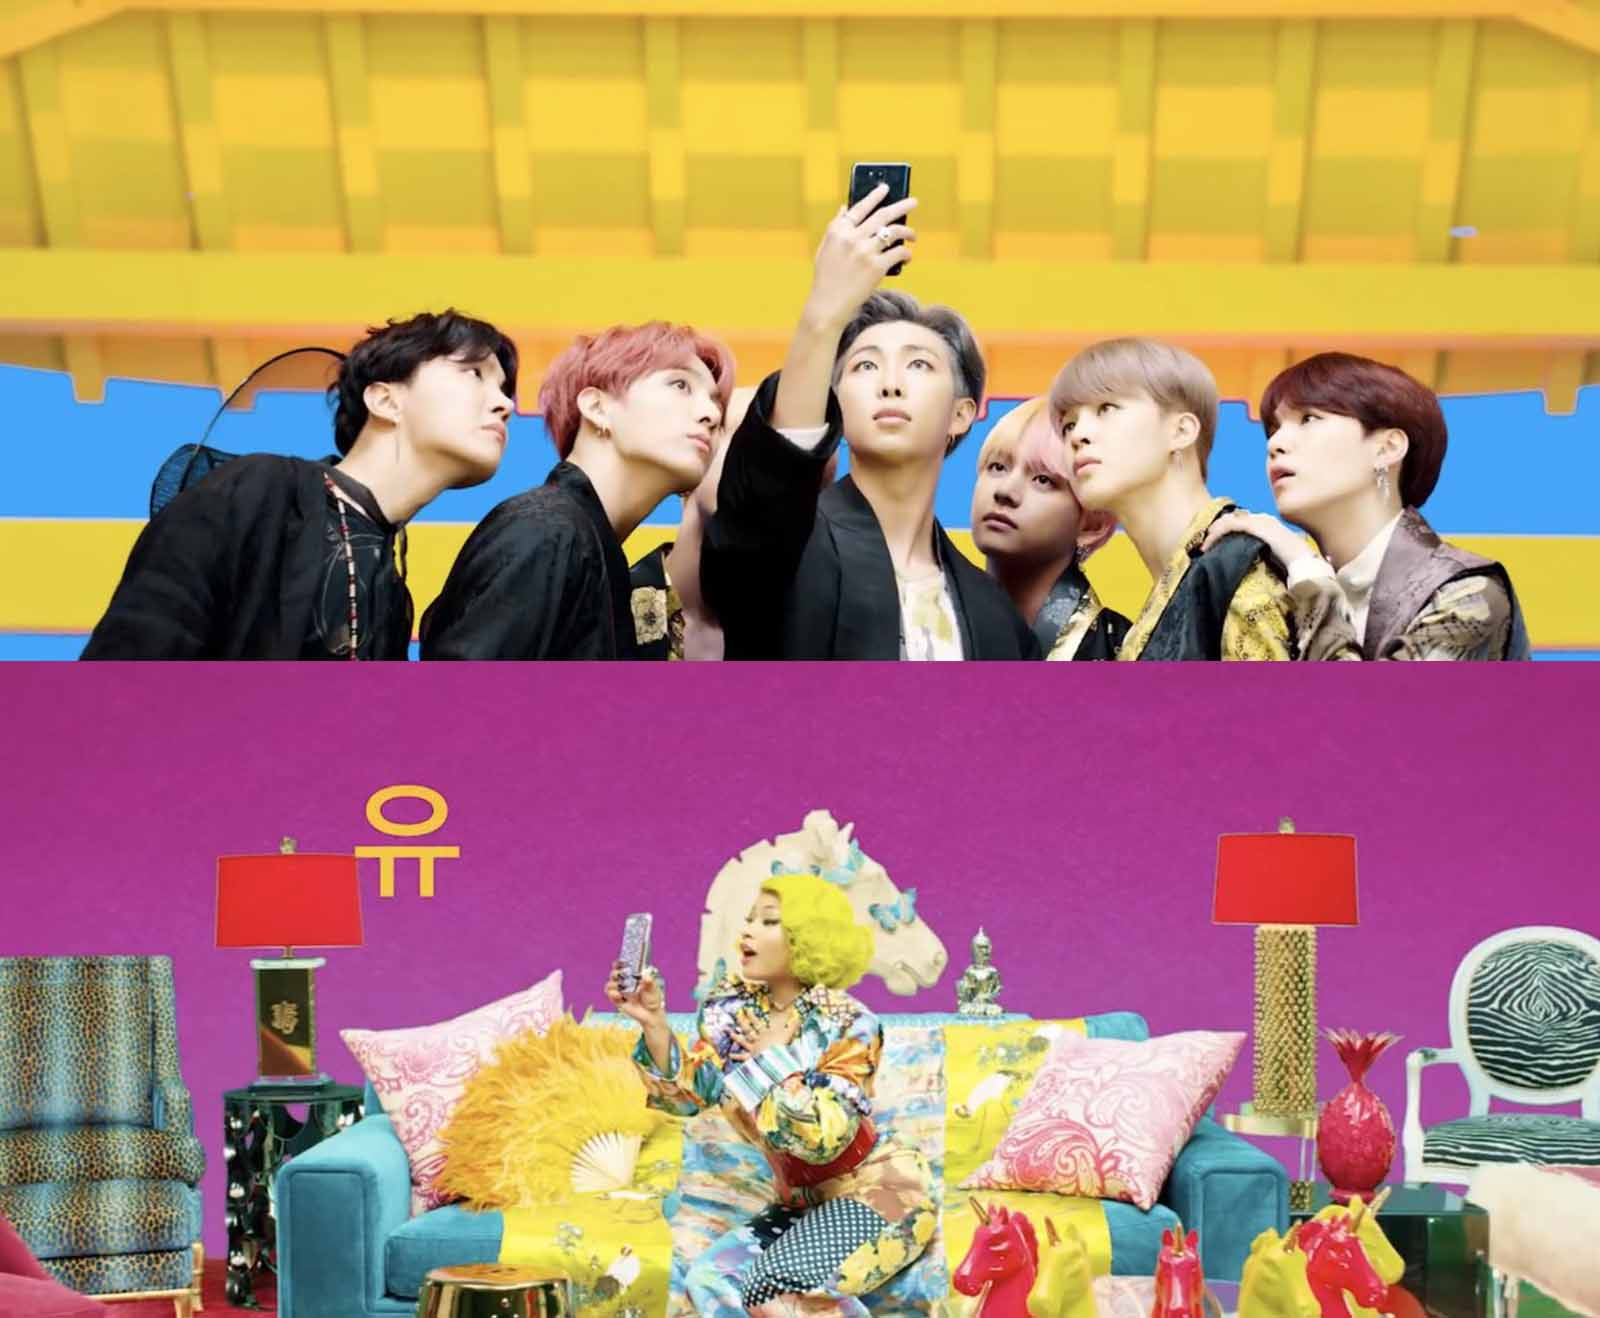 """BTS has quickly become one of the biggest artists in the world, and their recent hit """"Boy with Luv"""" is just the latest collab hitting the charts."""